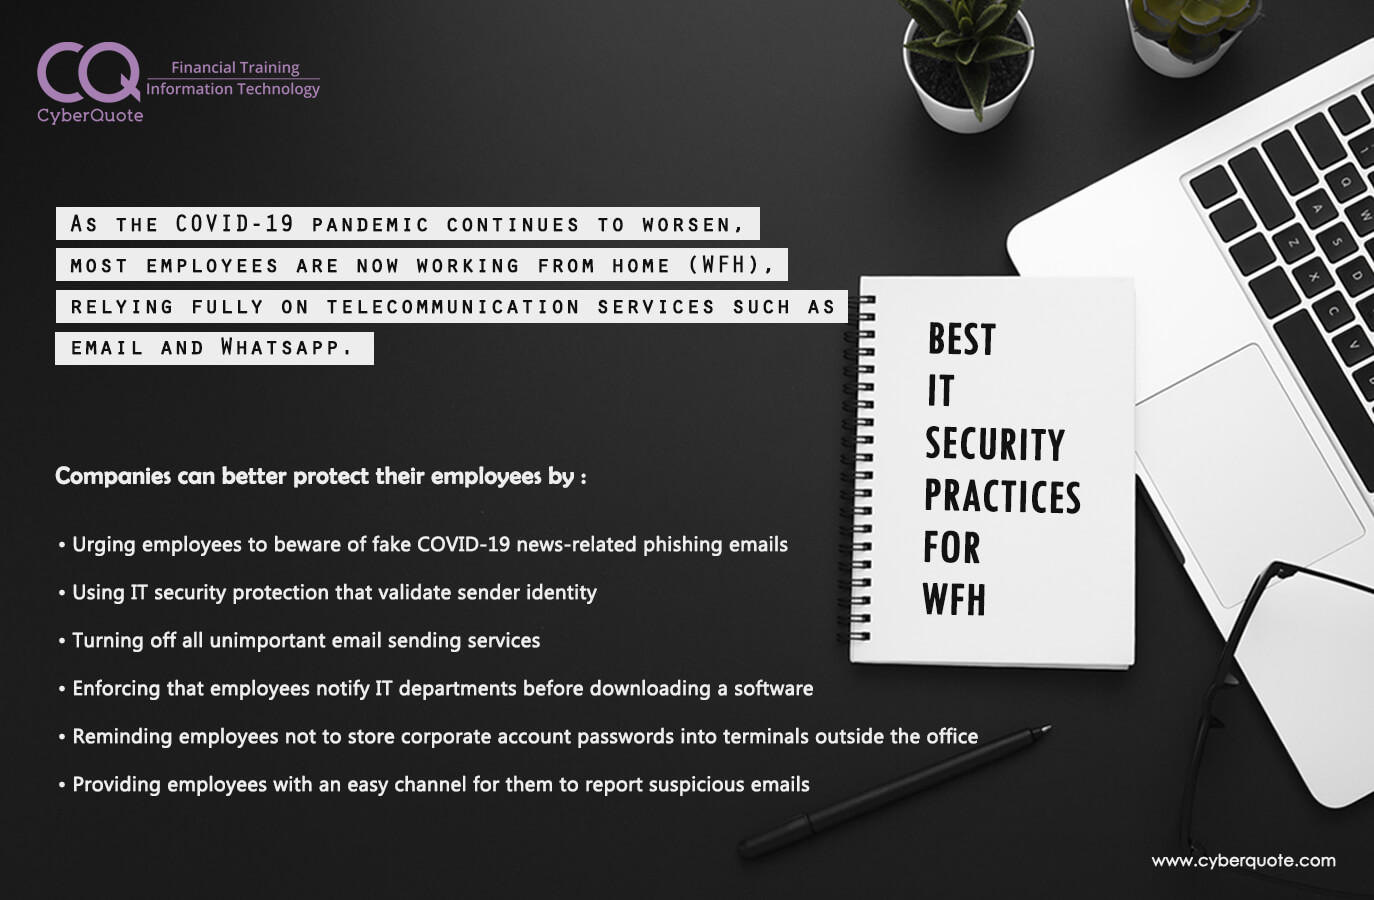 Best IT Security Practices for WFH